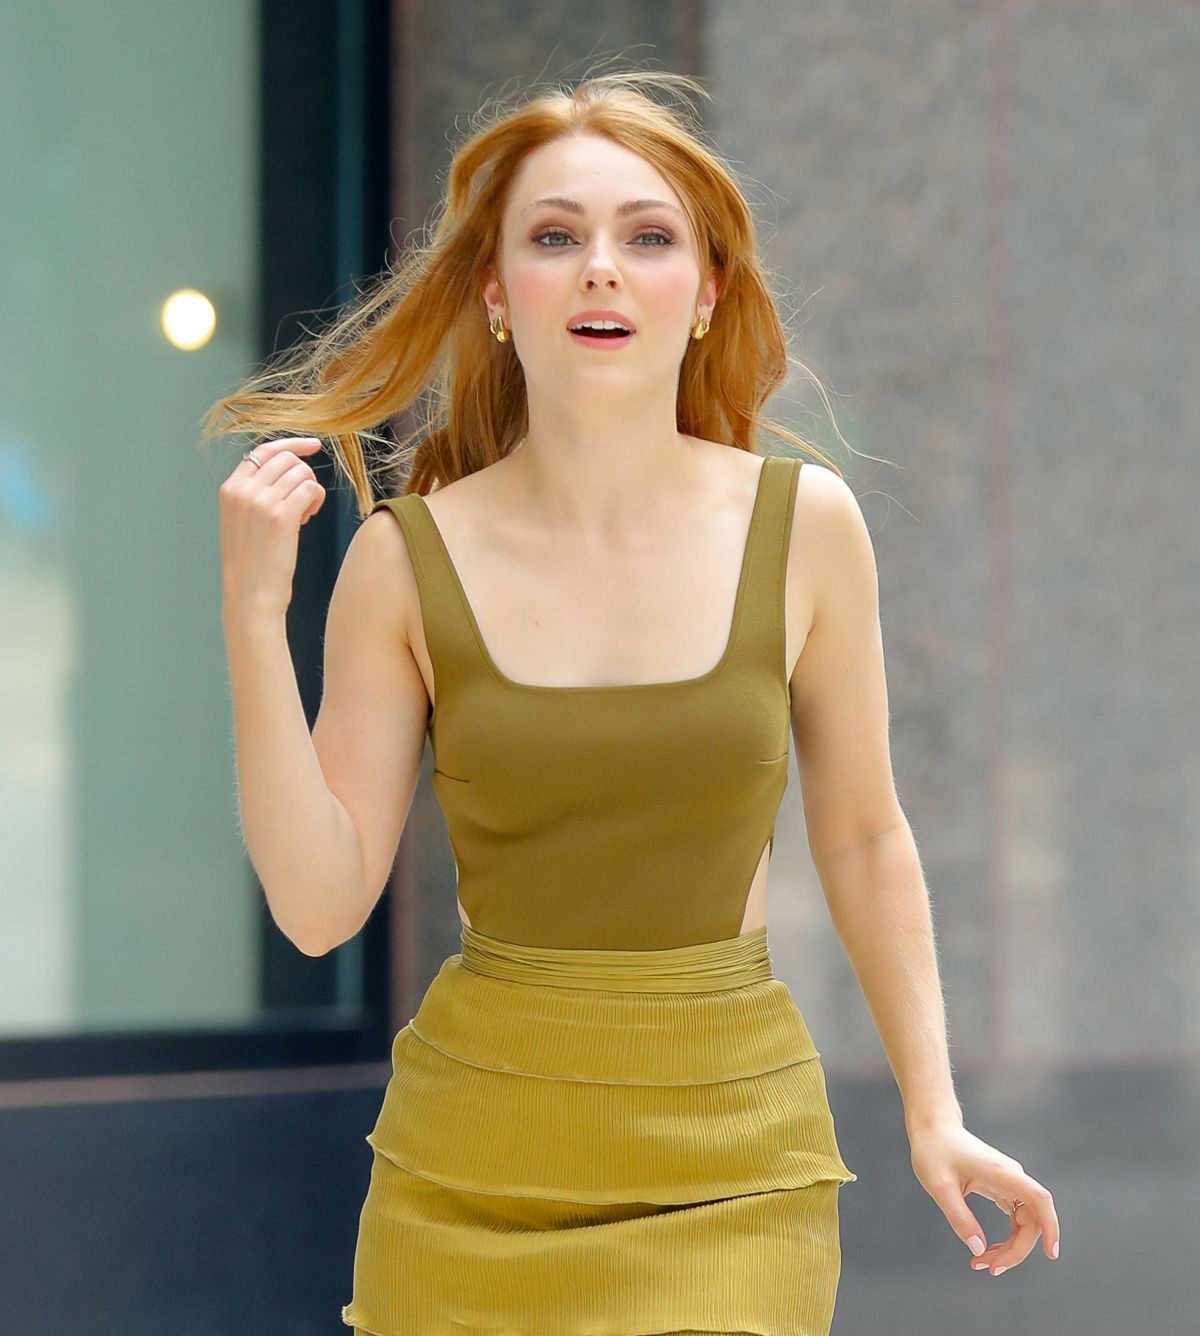 Pictures AnnaSophia Robb nudes (15 foto and video), Tits, Sideboobs, Twitter, see through 2020